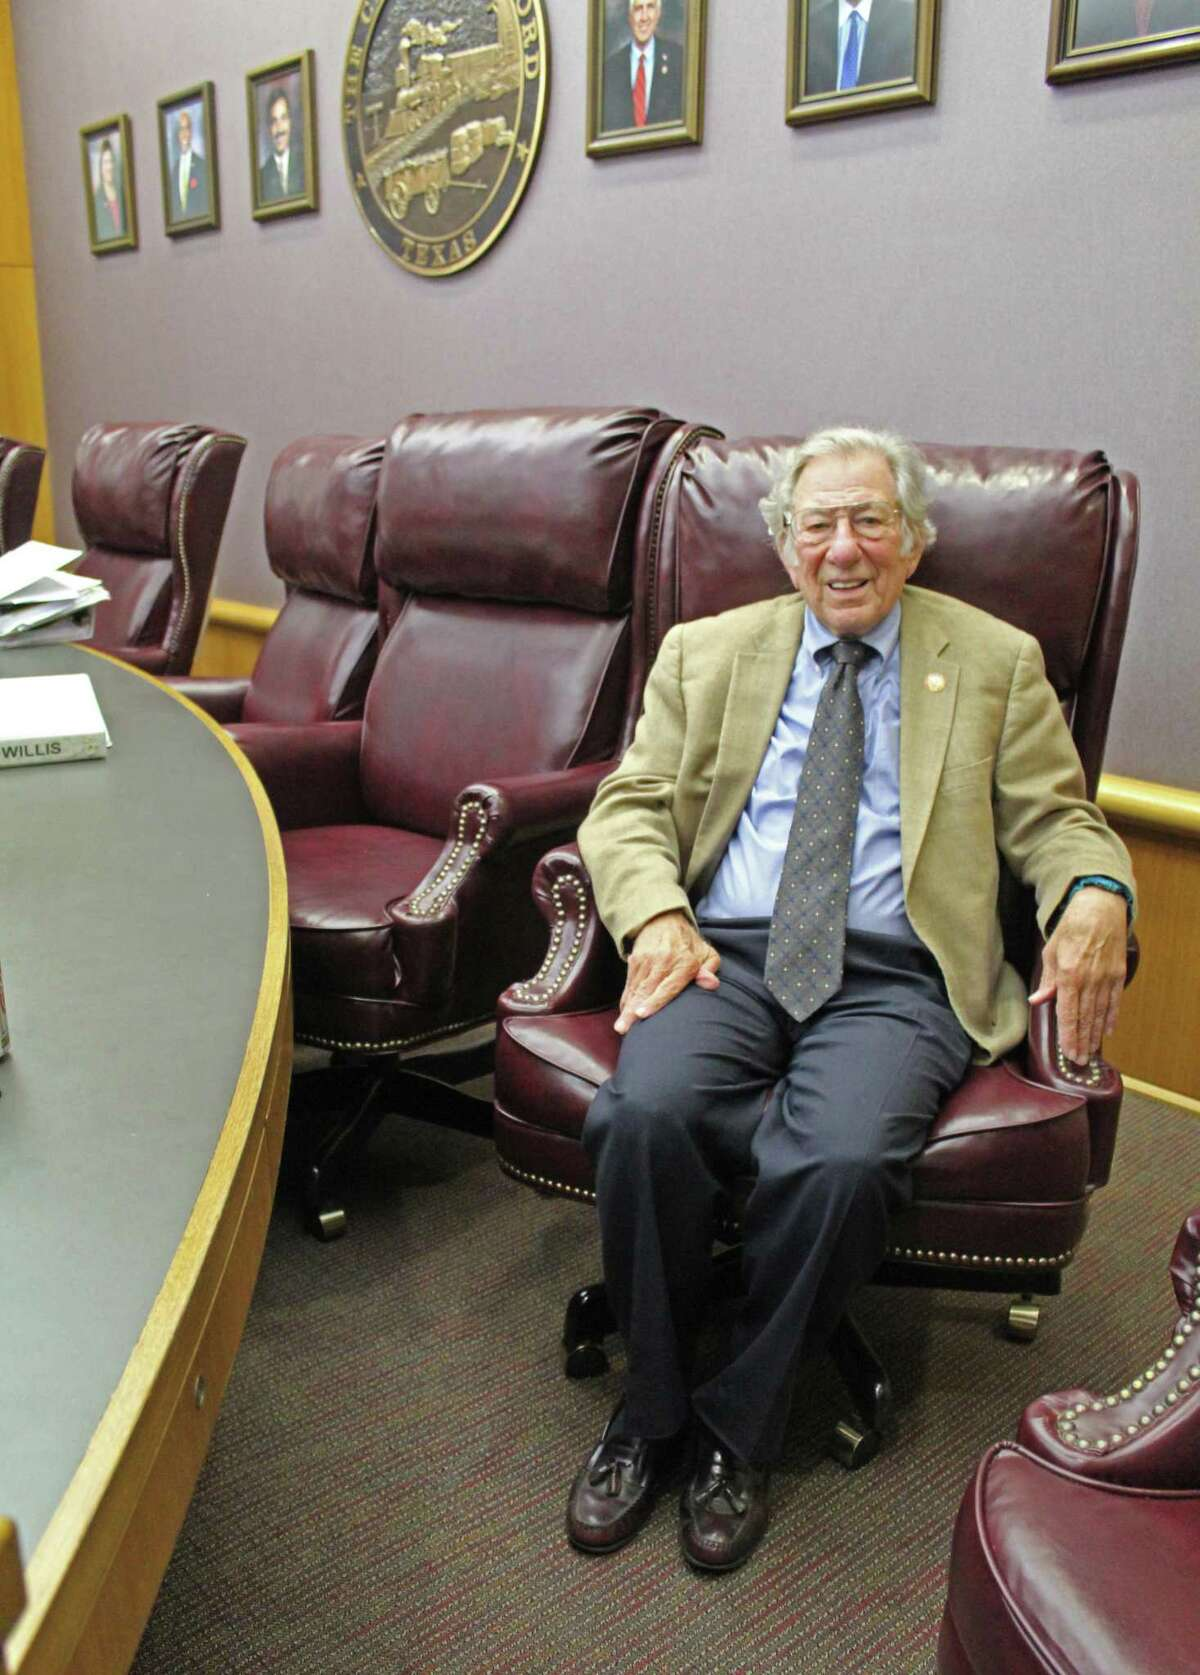 Mayor Leonard Scarcella at Stafford City Hall in October 2019. Scarcella, who served as the city's mayor from 1969 until his death in 2020, will be replaced by one of four candidates when votes are cast and counted in the general election.